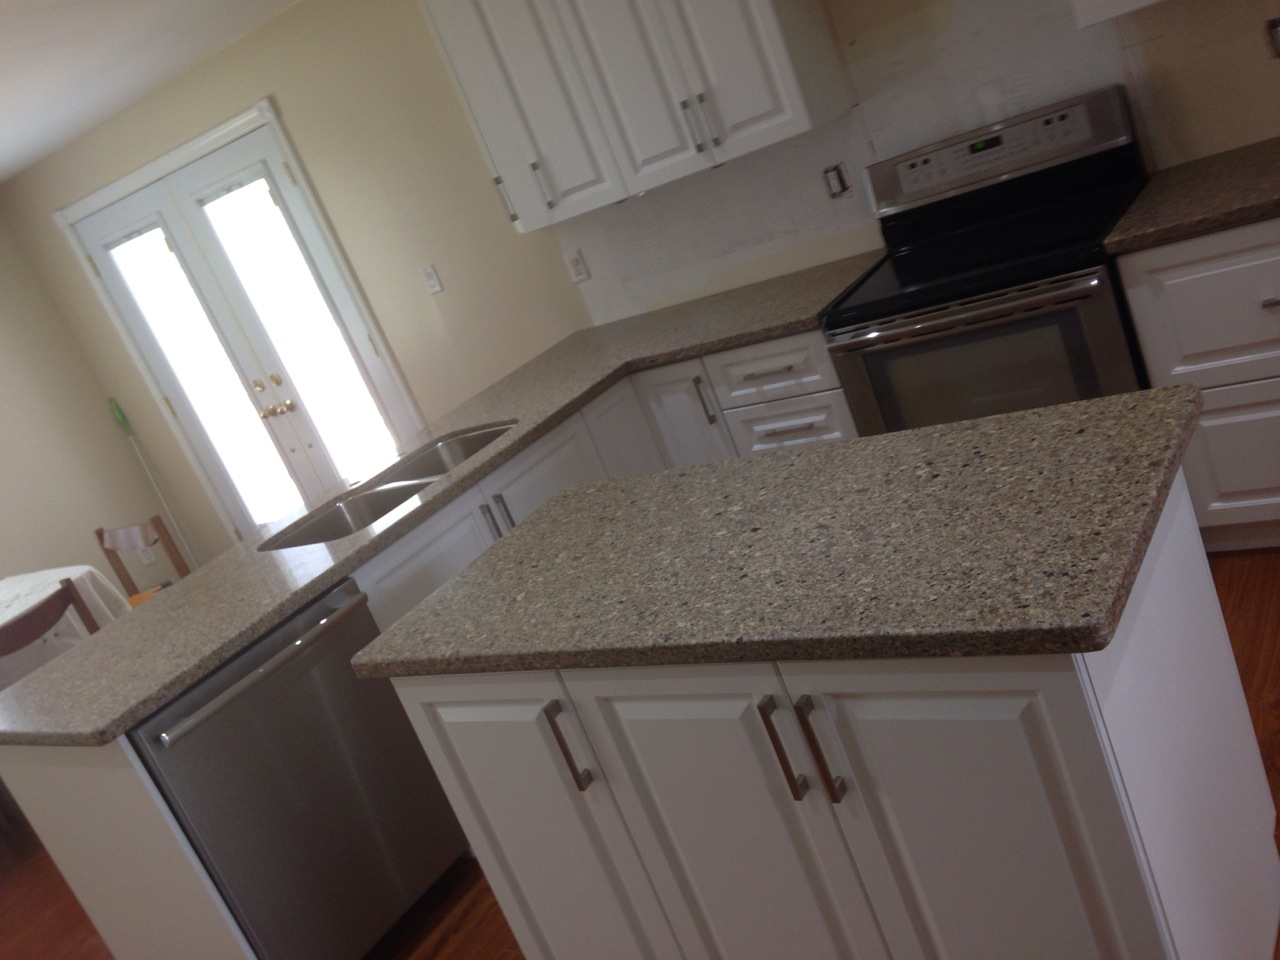 How Much Are Quartz Countertops Installed Installed Silestone Countertop Granite Marble And Quartz